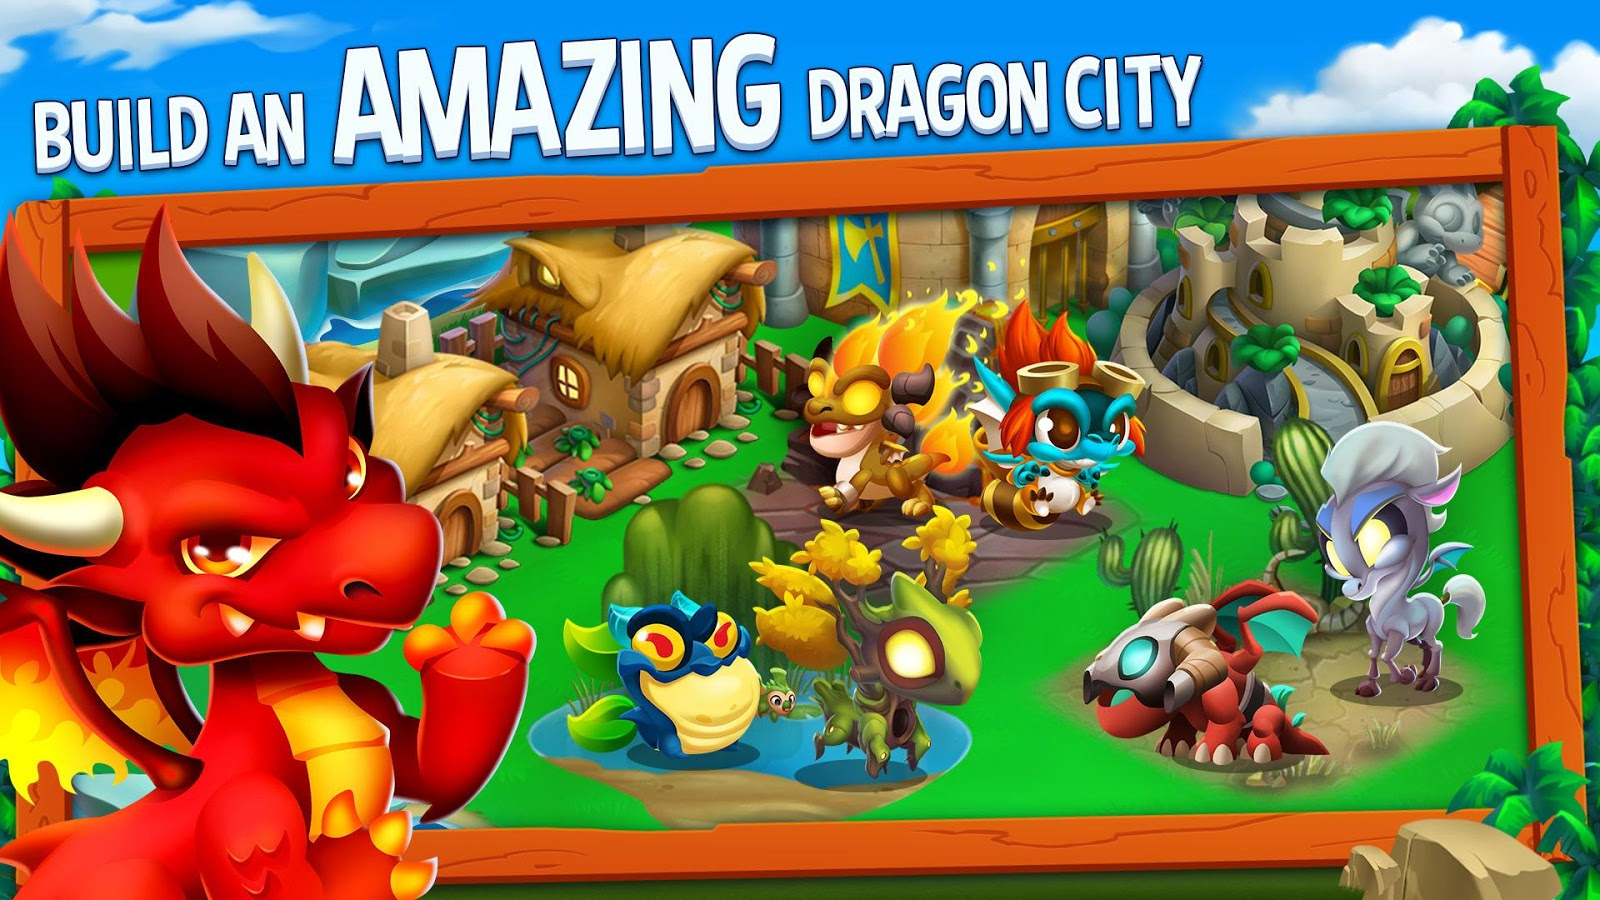 Dragon City 9 6 2 APK Download - Android Simulation Games